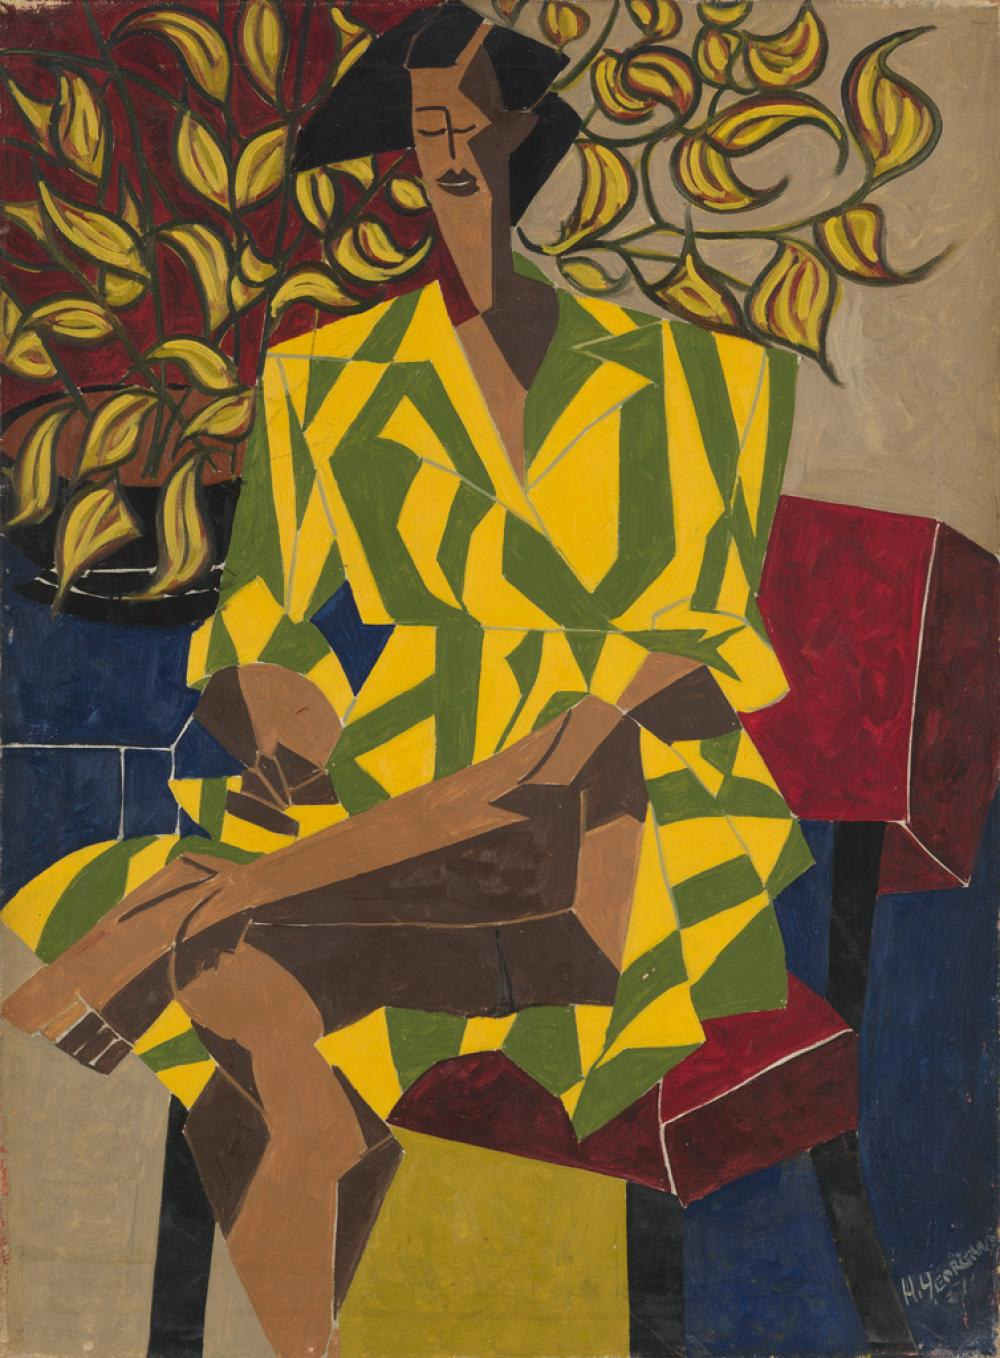 HARTWELL YEARGANS (1915 - 2005) Untitled (Woman with Plant).